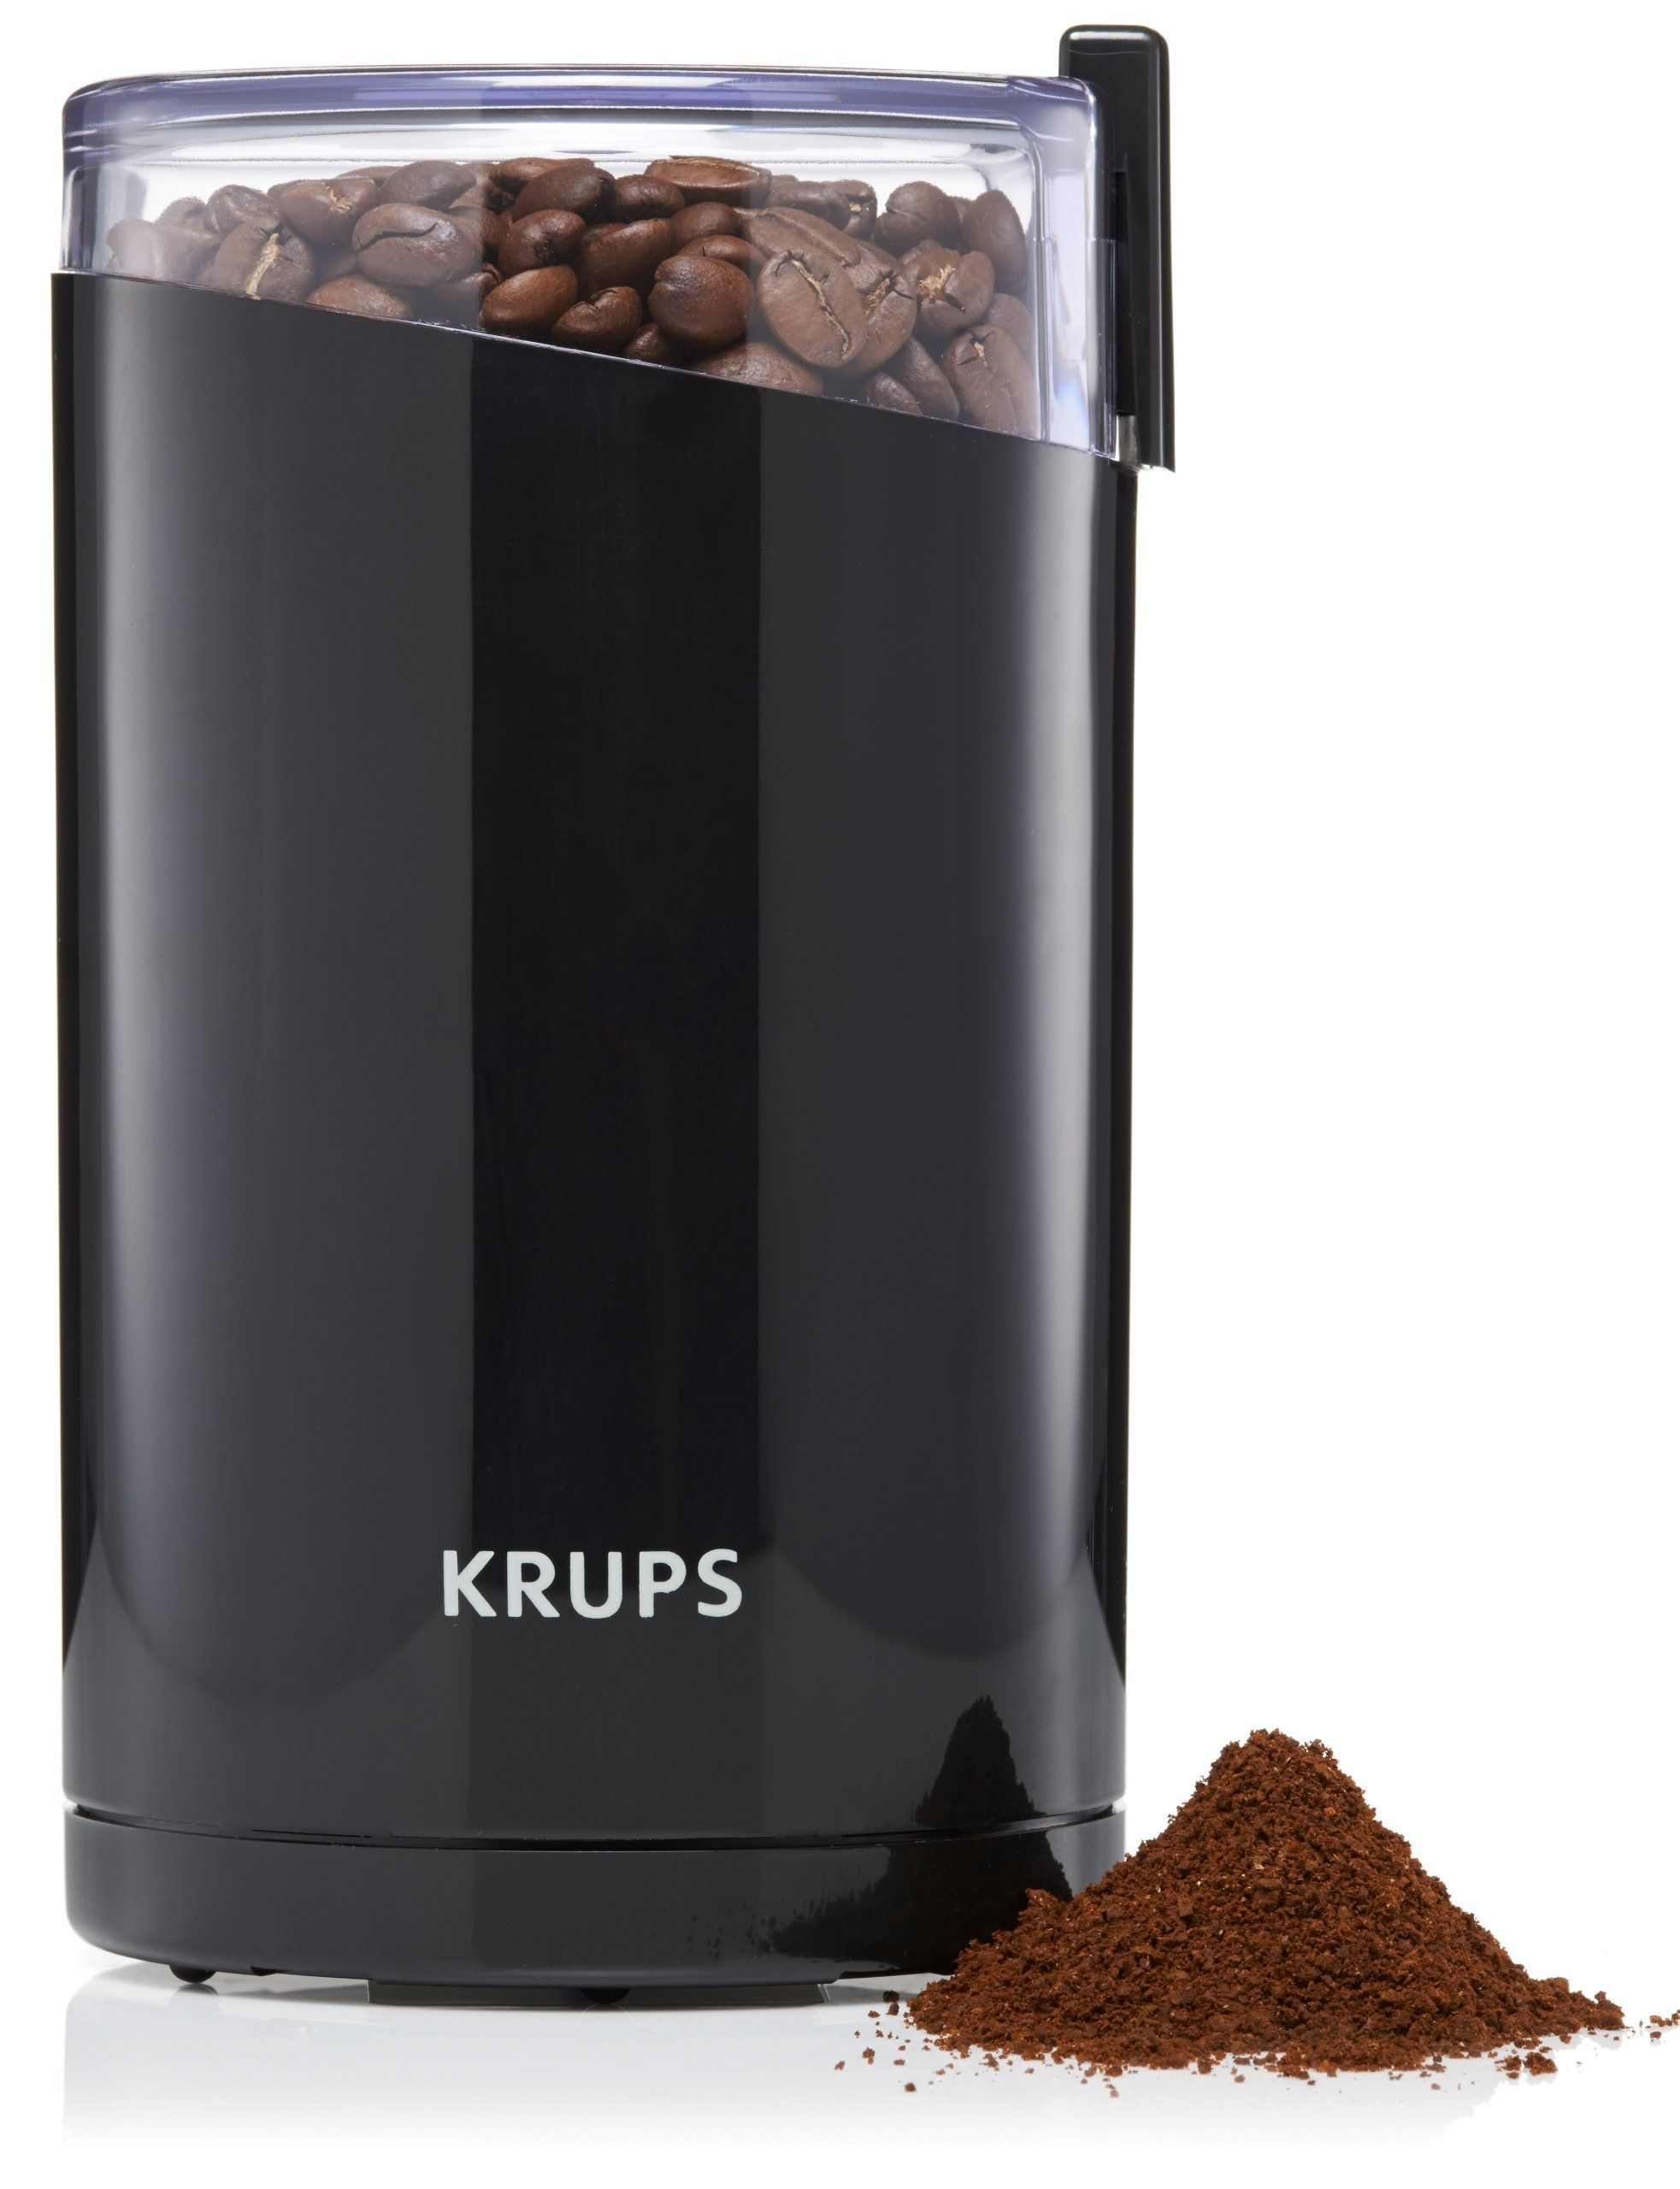 KRUPS F203 Electric Spice and Coffee Grinder with Stainless Steel Blades, 3-Ounce, Black (Renewed) by KRUPS